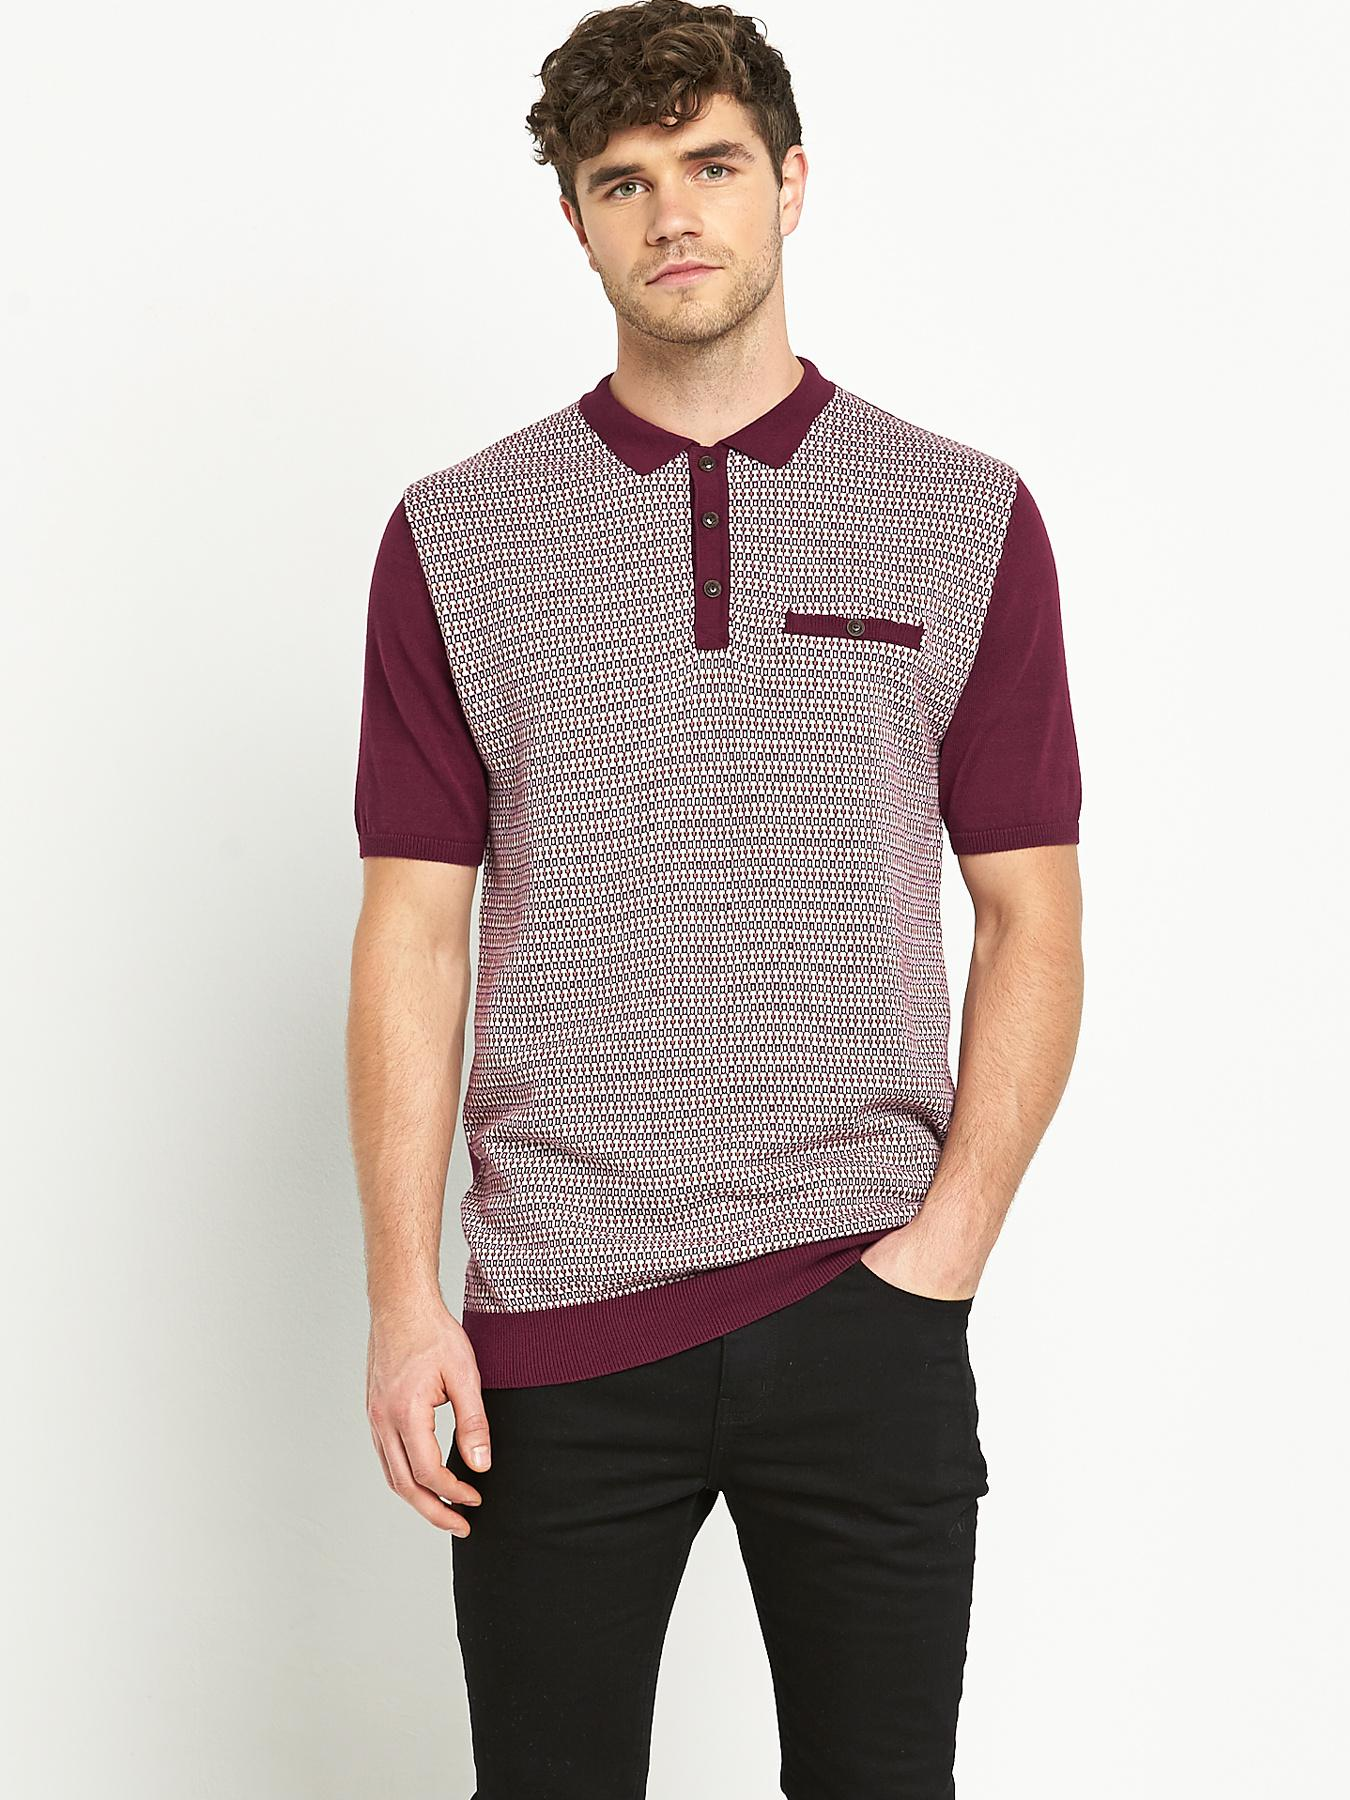 Goodsouls Mens Short Sleeve Jacquard Polo Shirt